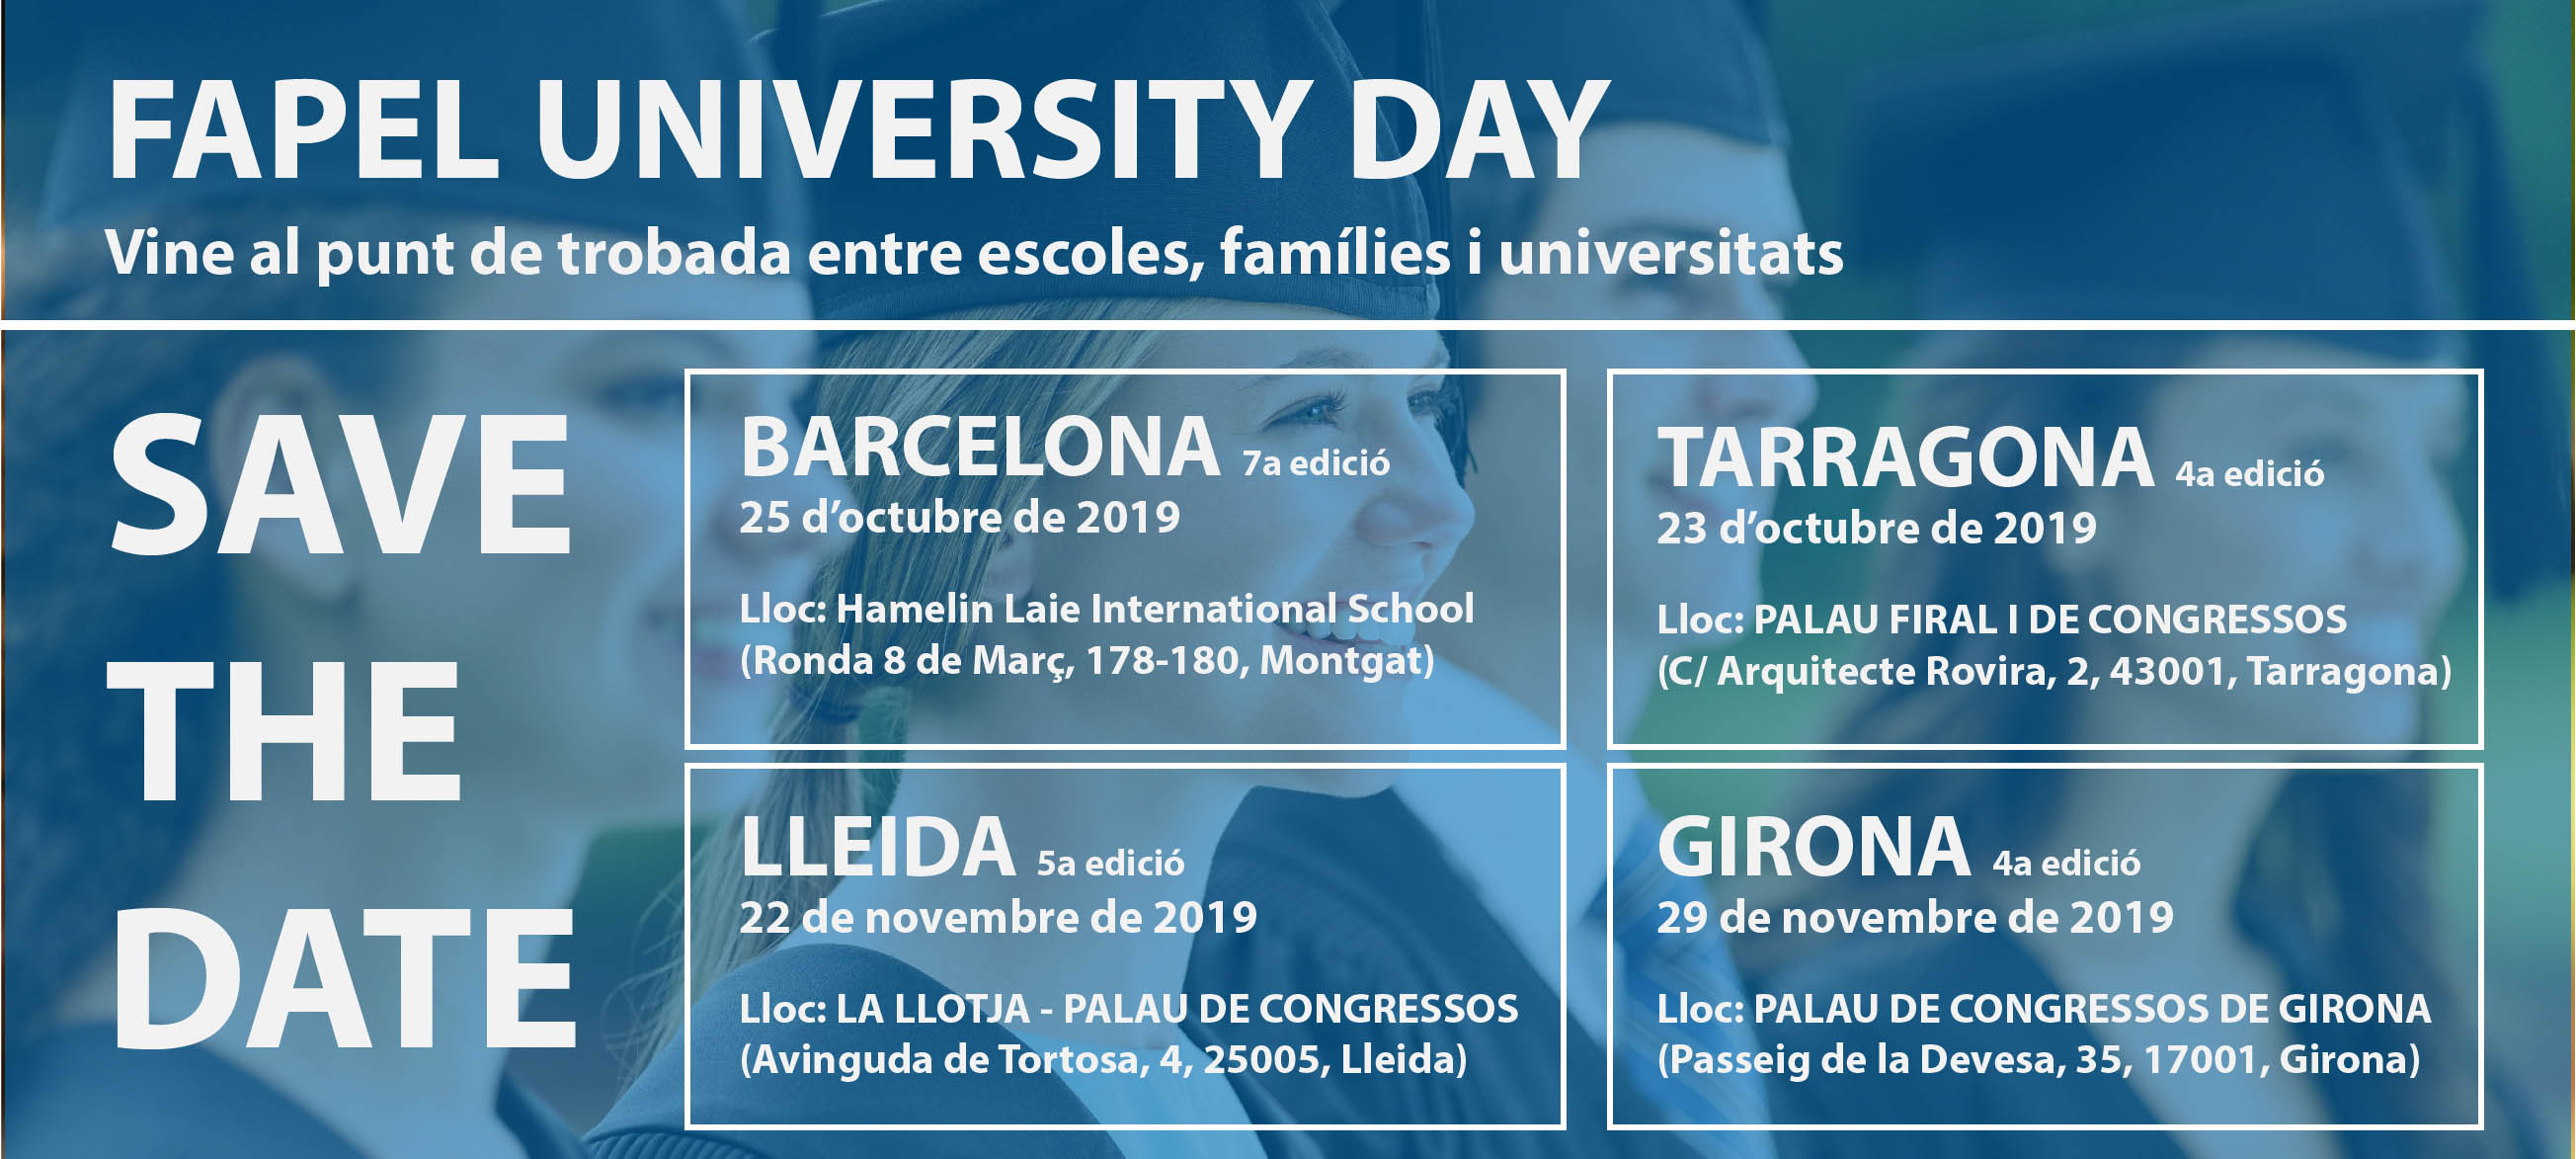 Fapel University Day 2019